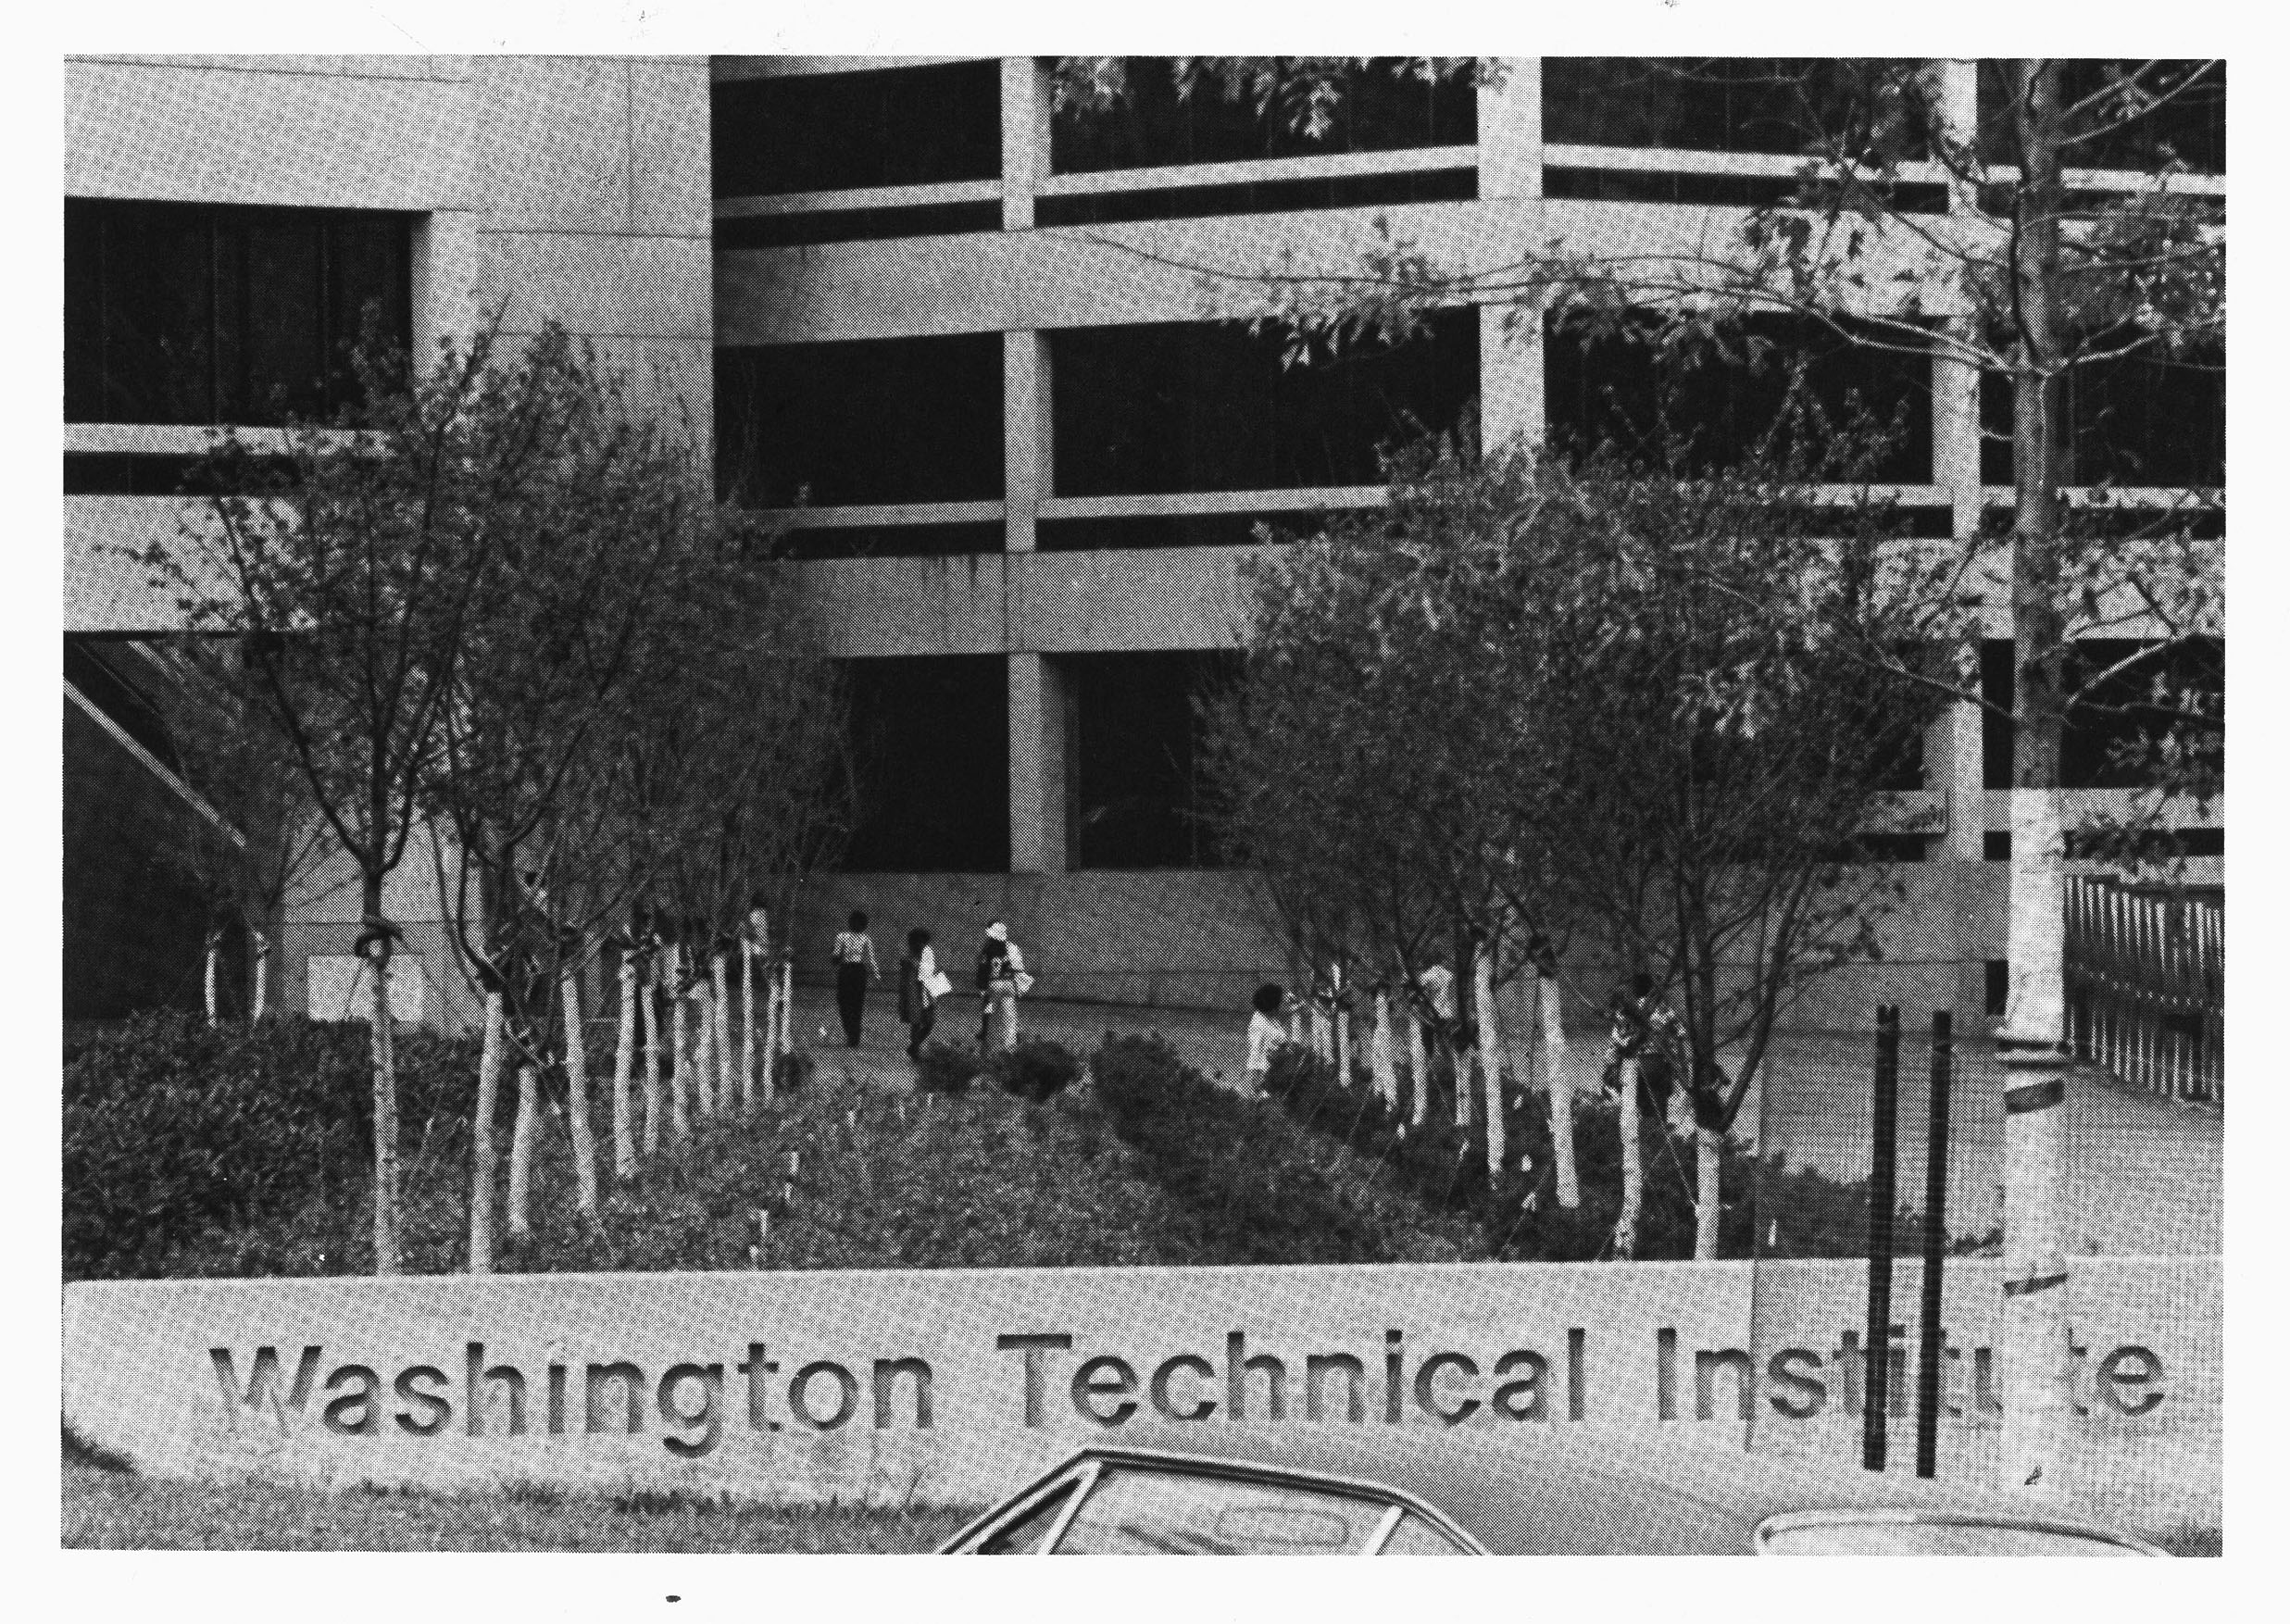 Washington Technical Institute -- New WTI Building (with sign)